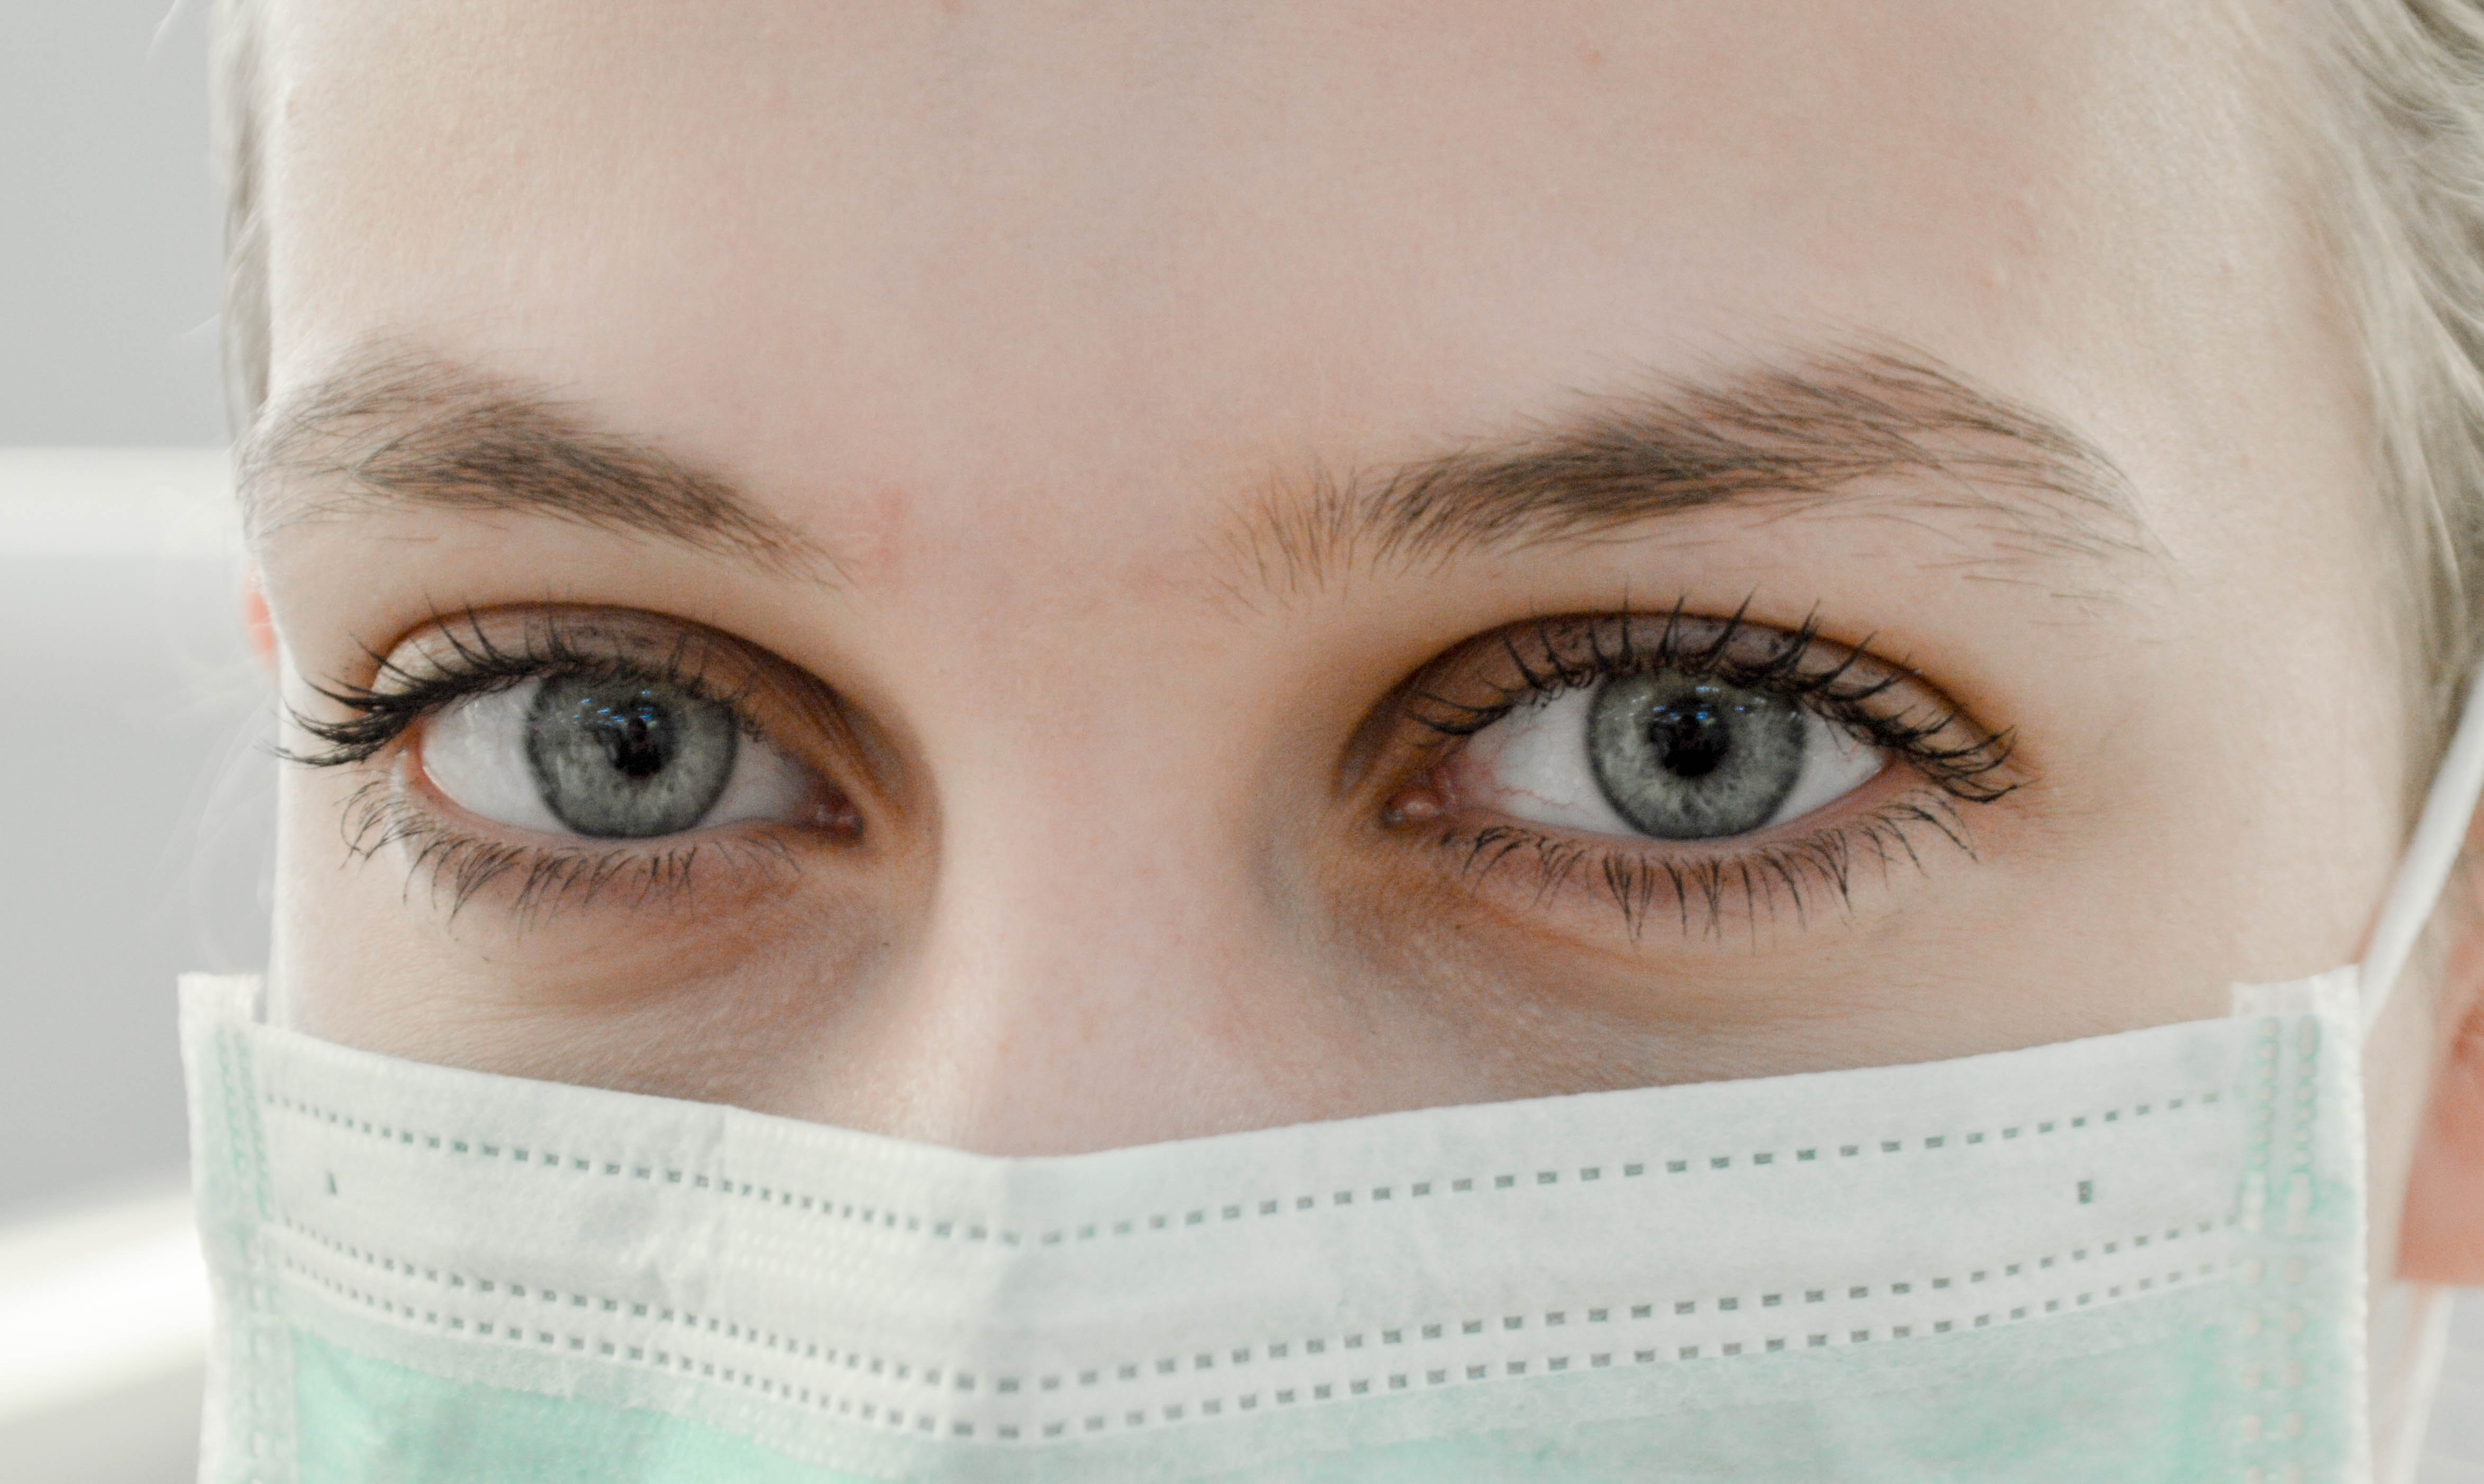 How to tell if a cold is COVID-19 | Popular Science